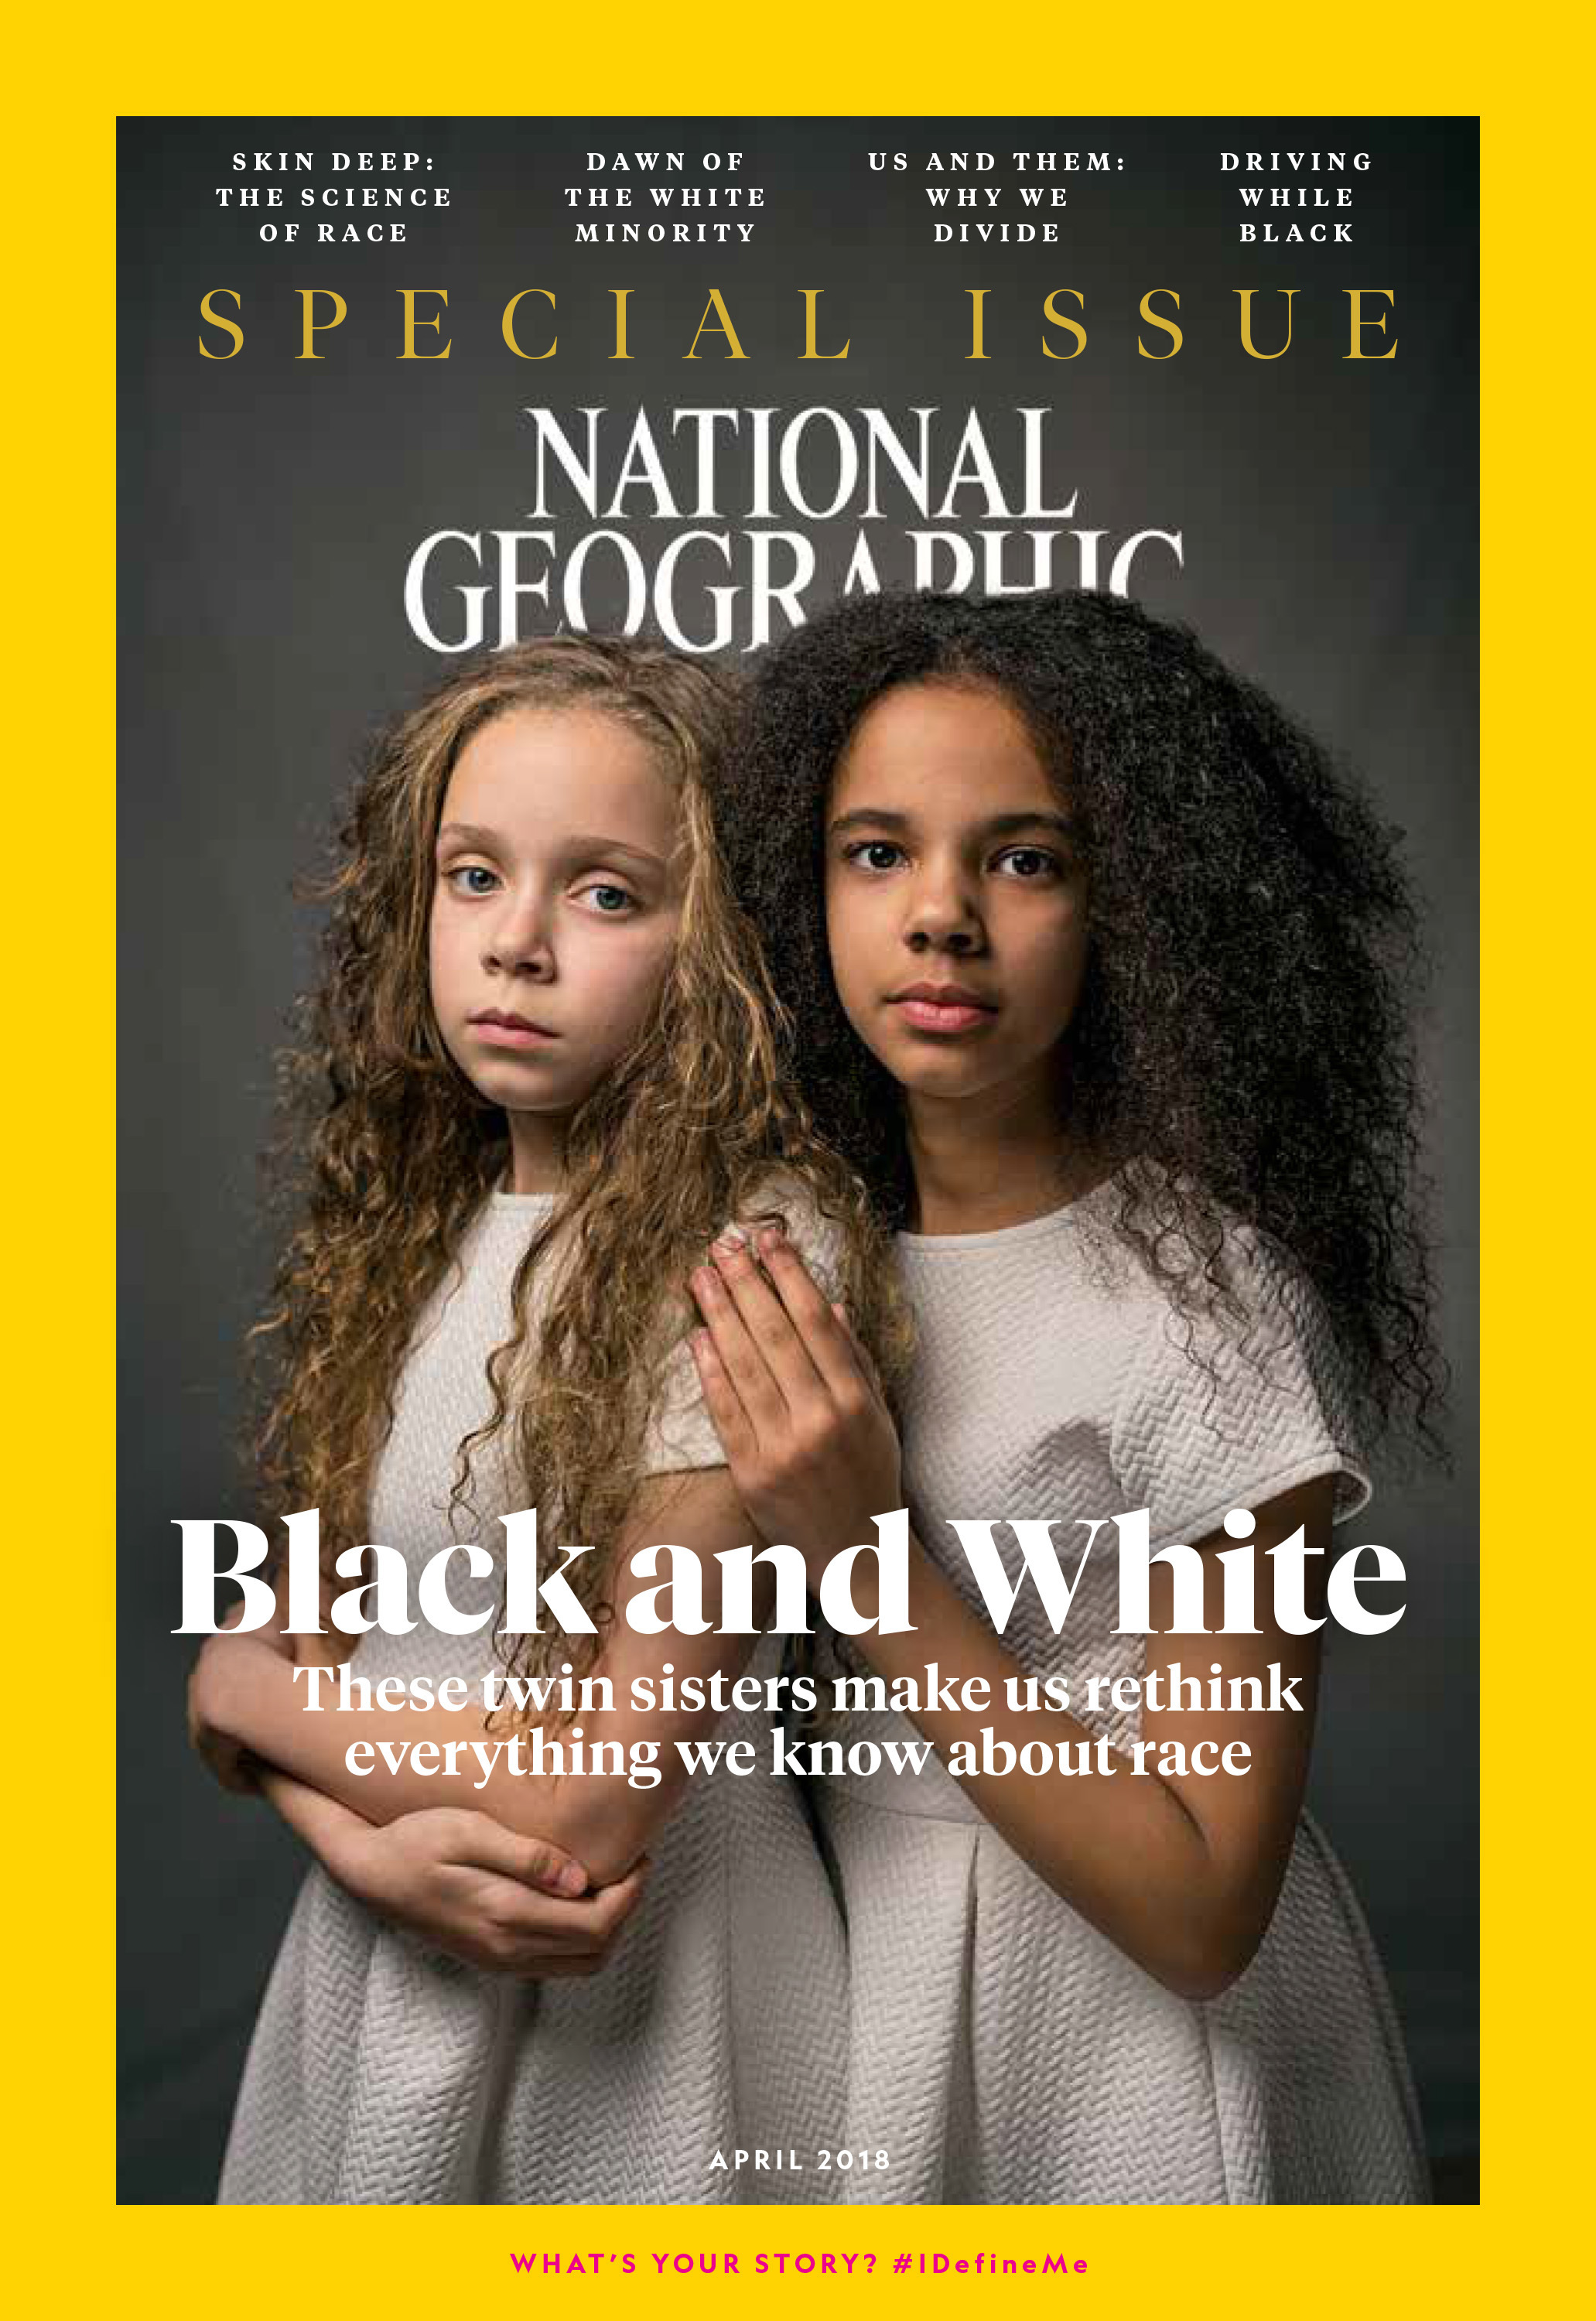 The April issue of National Geographic is all about race. National Geographic